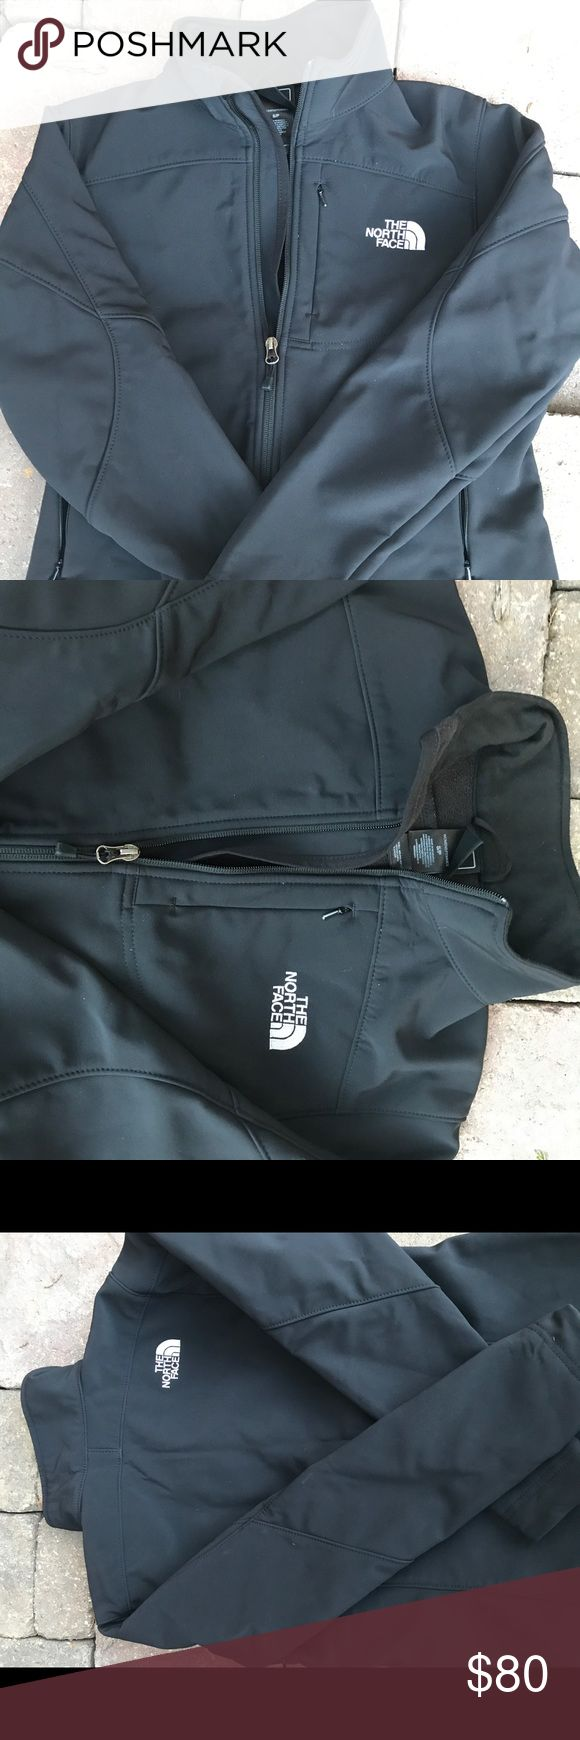 Black North Face Windbreaker Brand new, never worn black North Face windbreaker with fleece inside and also water resistant. Like new. The North Face Jackets & Coats Utility Jackets